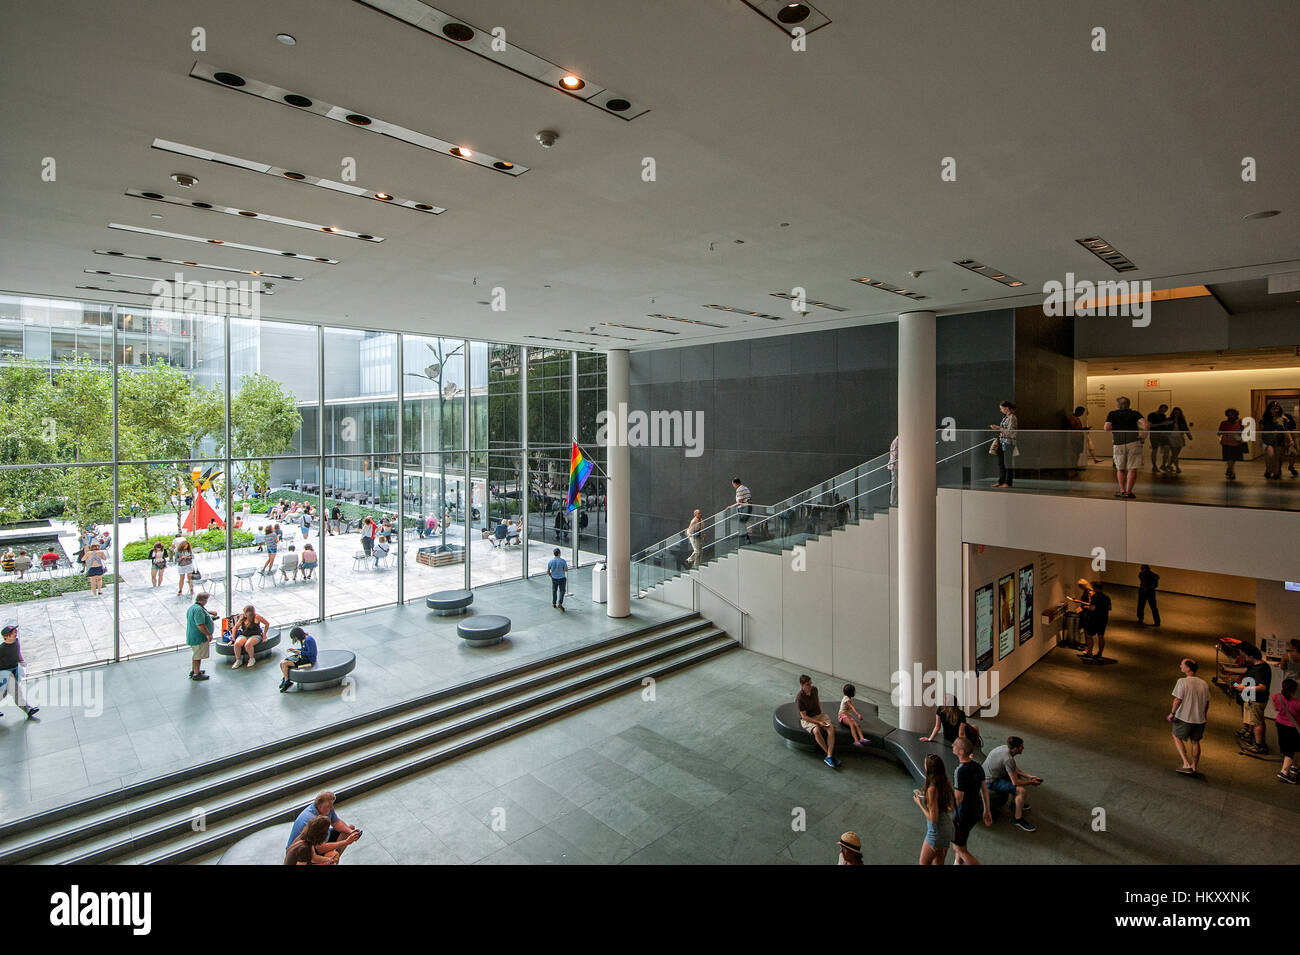 Museo Moma.Entrance And Courtyard Of The Museum Of Modern Art Moma West 53rd